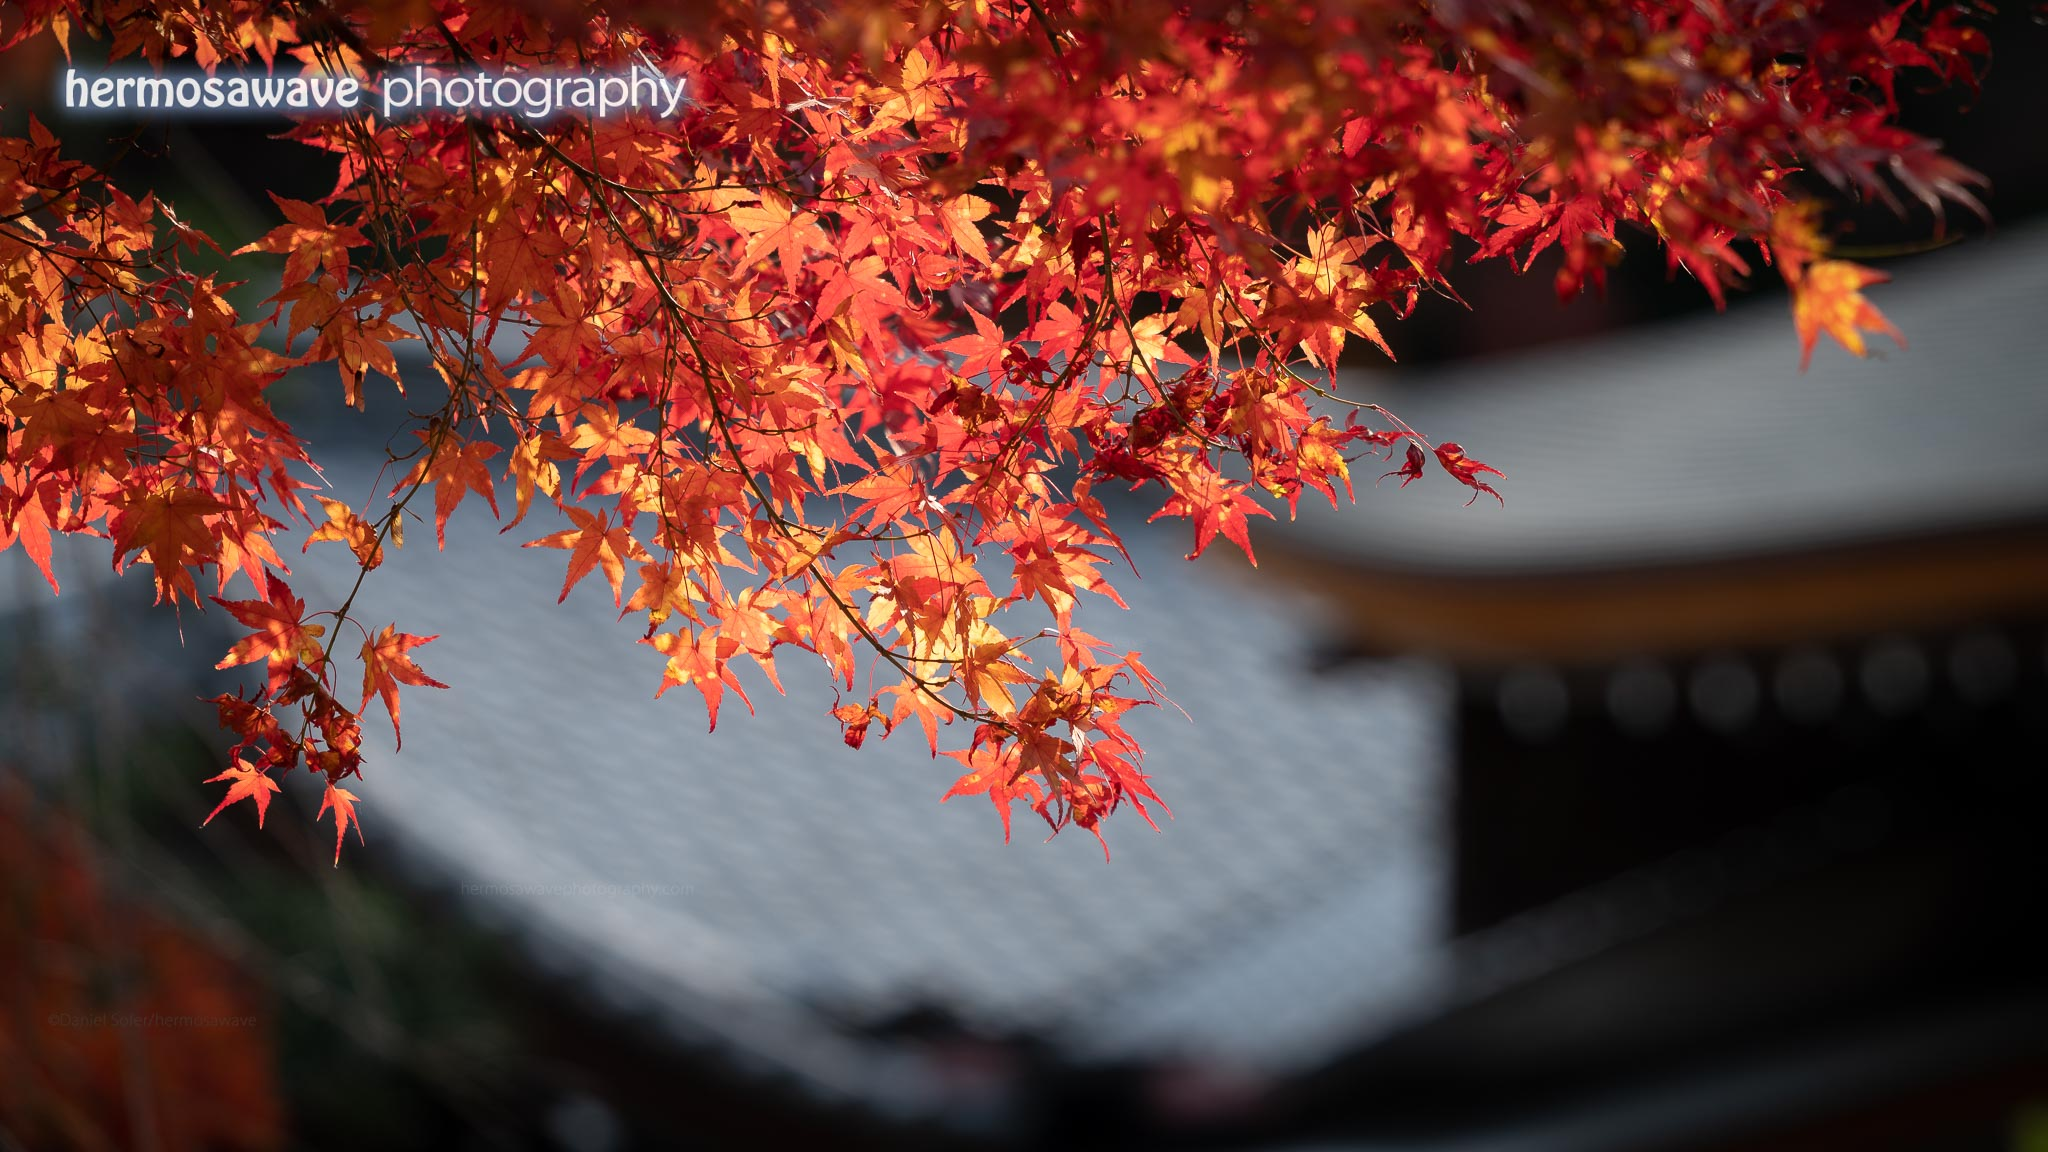 Maple Leaves at Nison-in・二尊院の紅葉